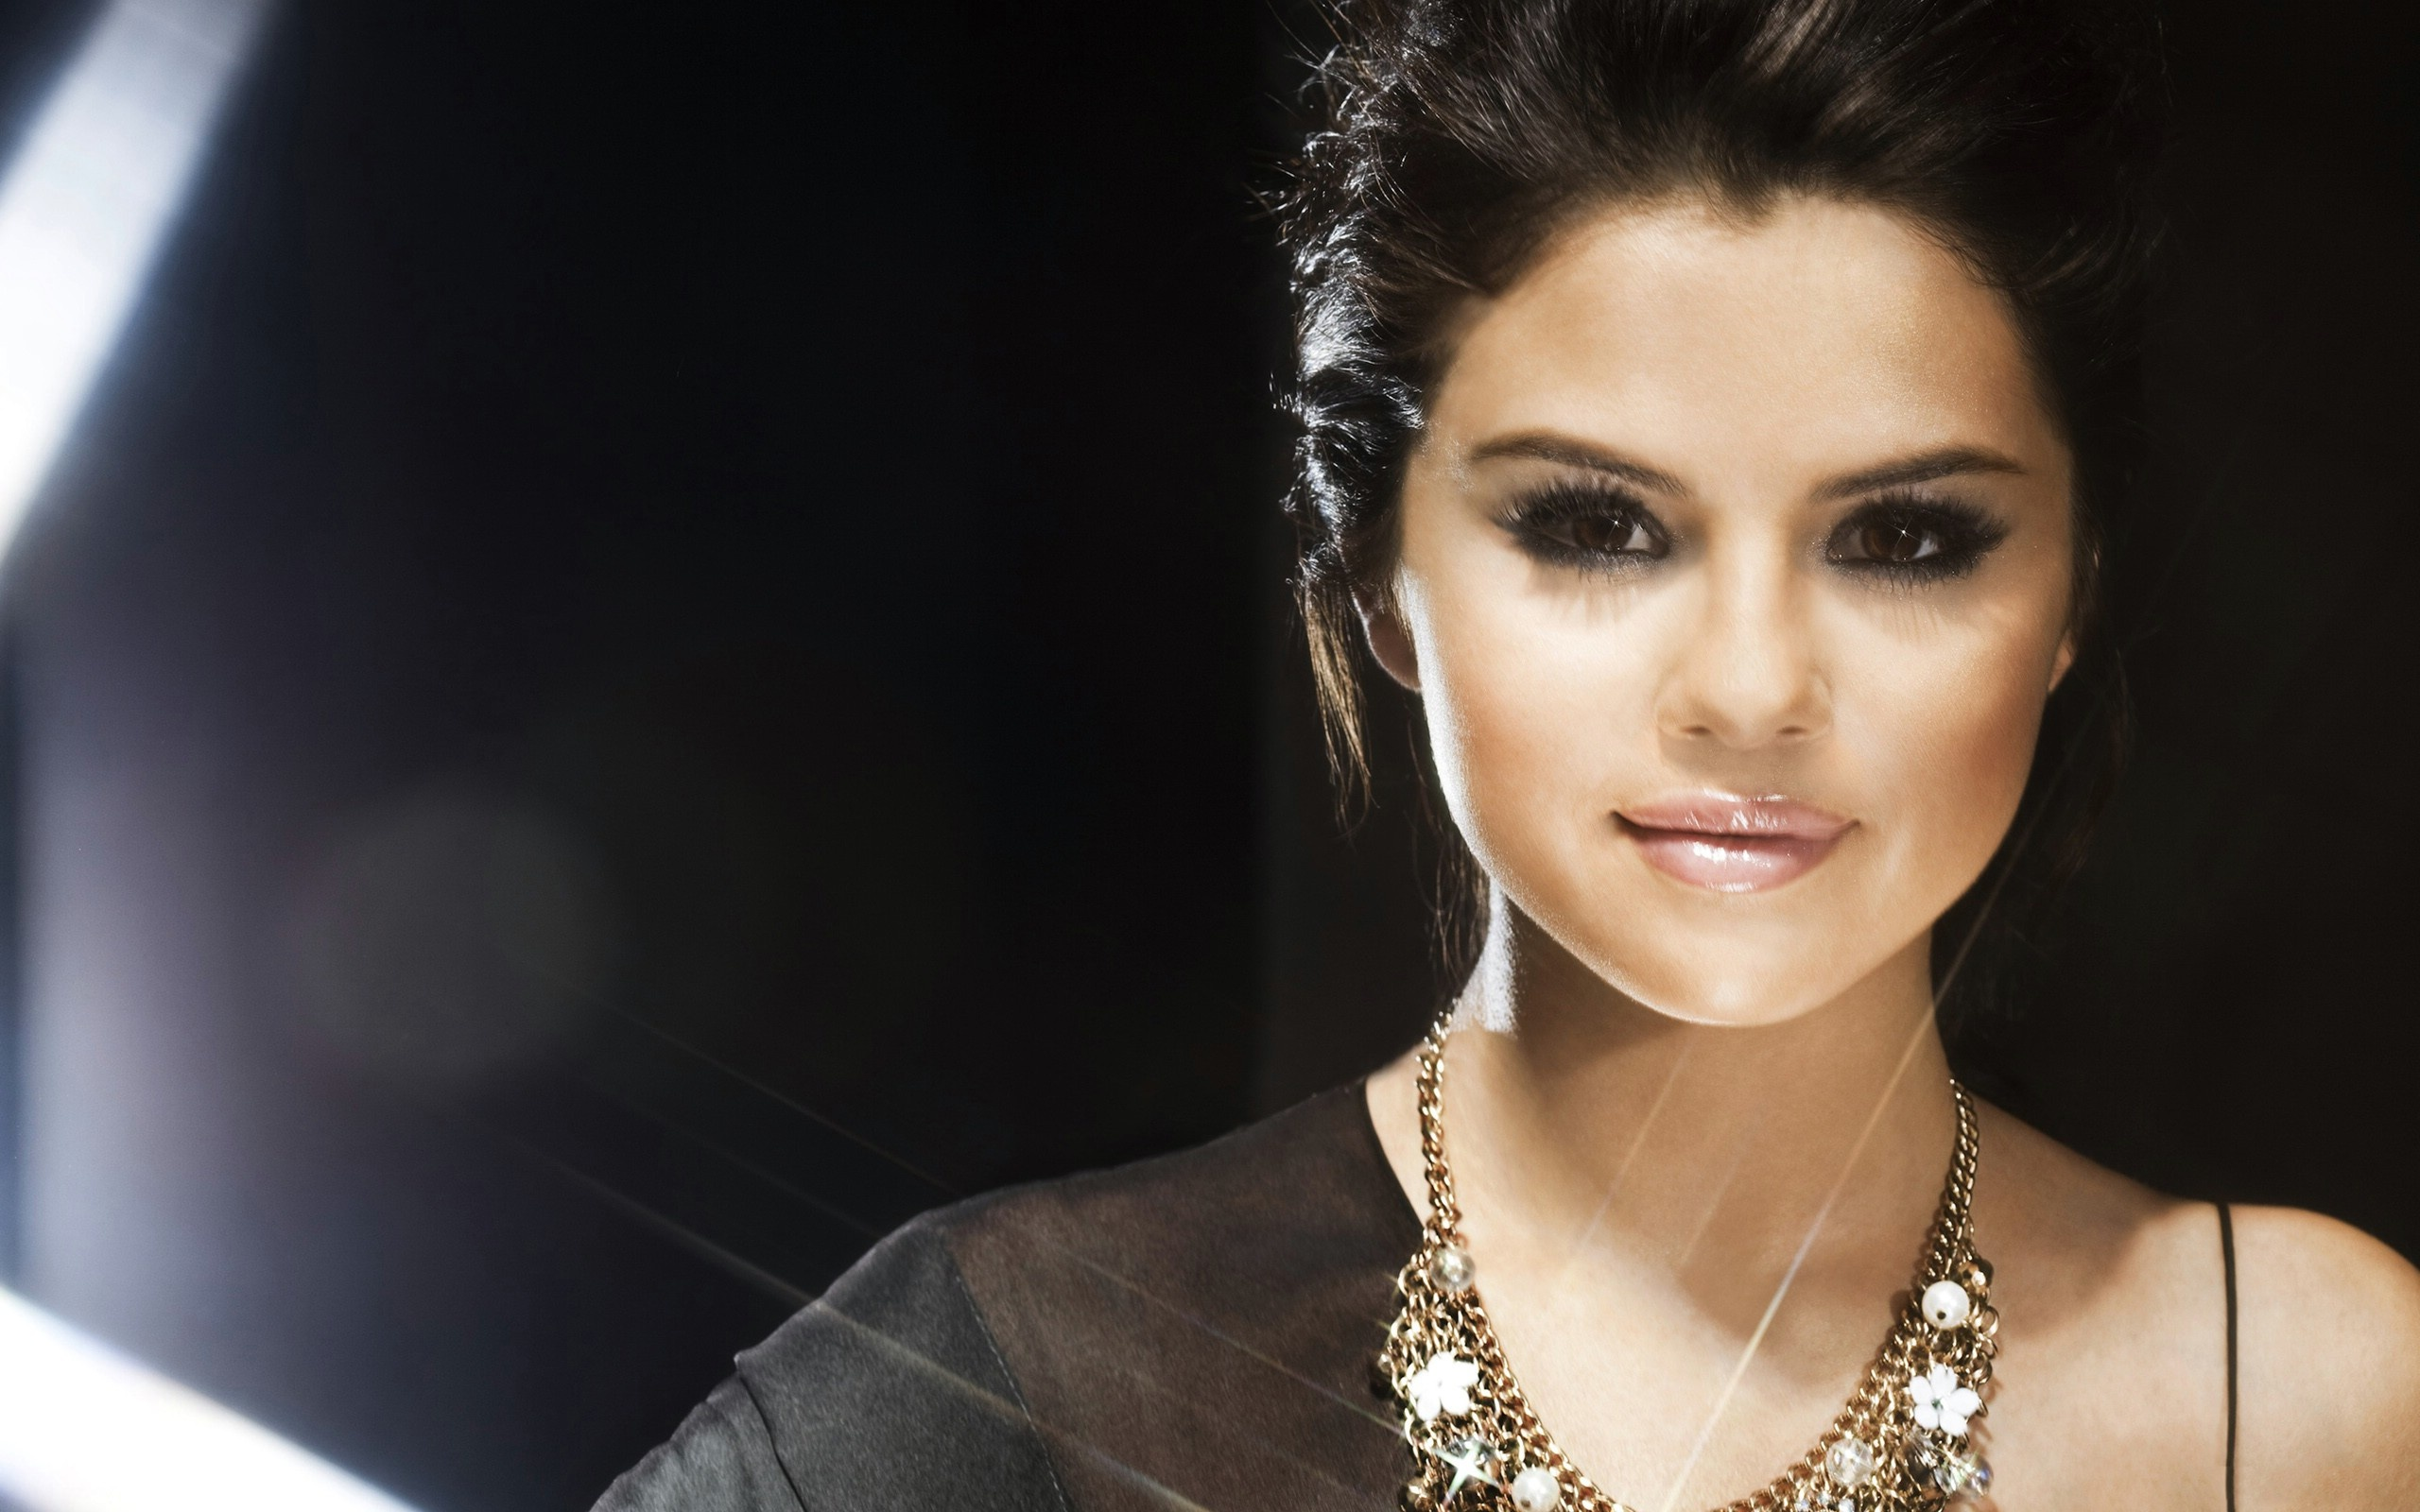 Cute Love Selena Gomez Hd Wallpapers Free